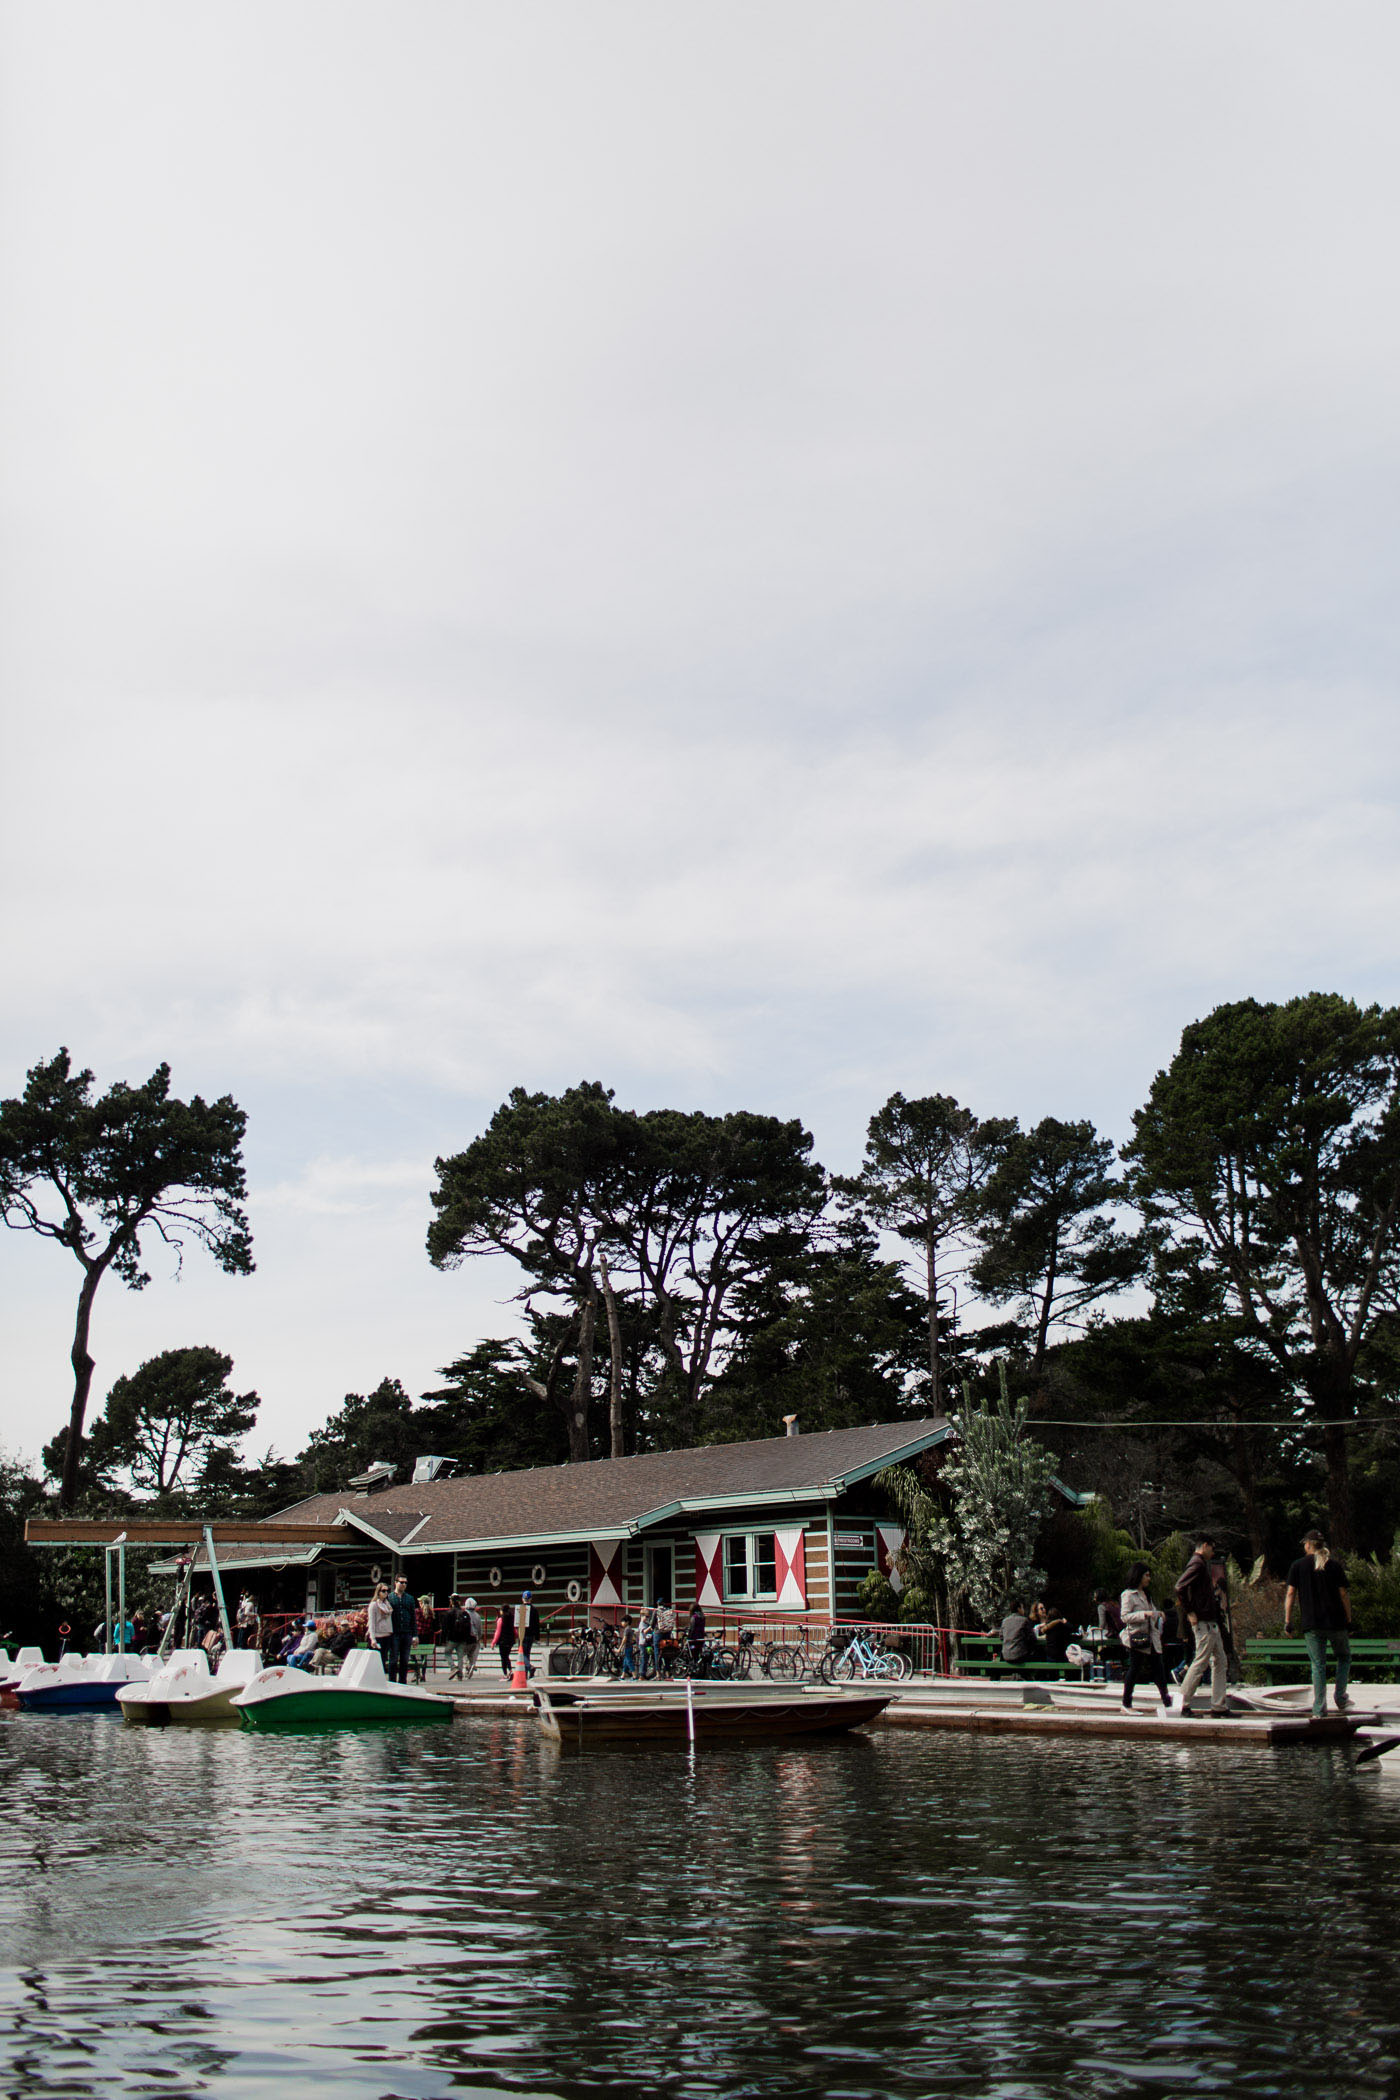 Stow Lake Boathouse and Pedal Boats in Golden Gate Park